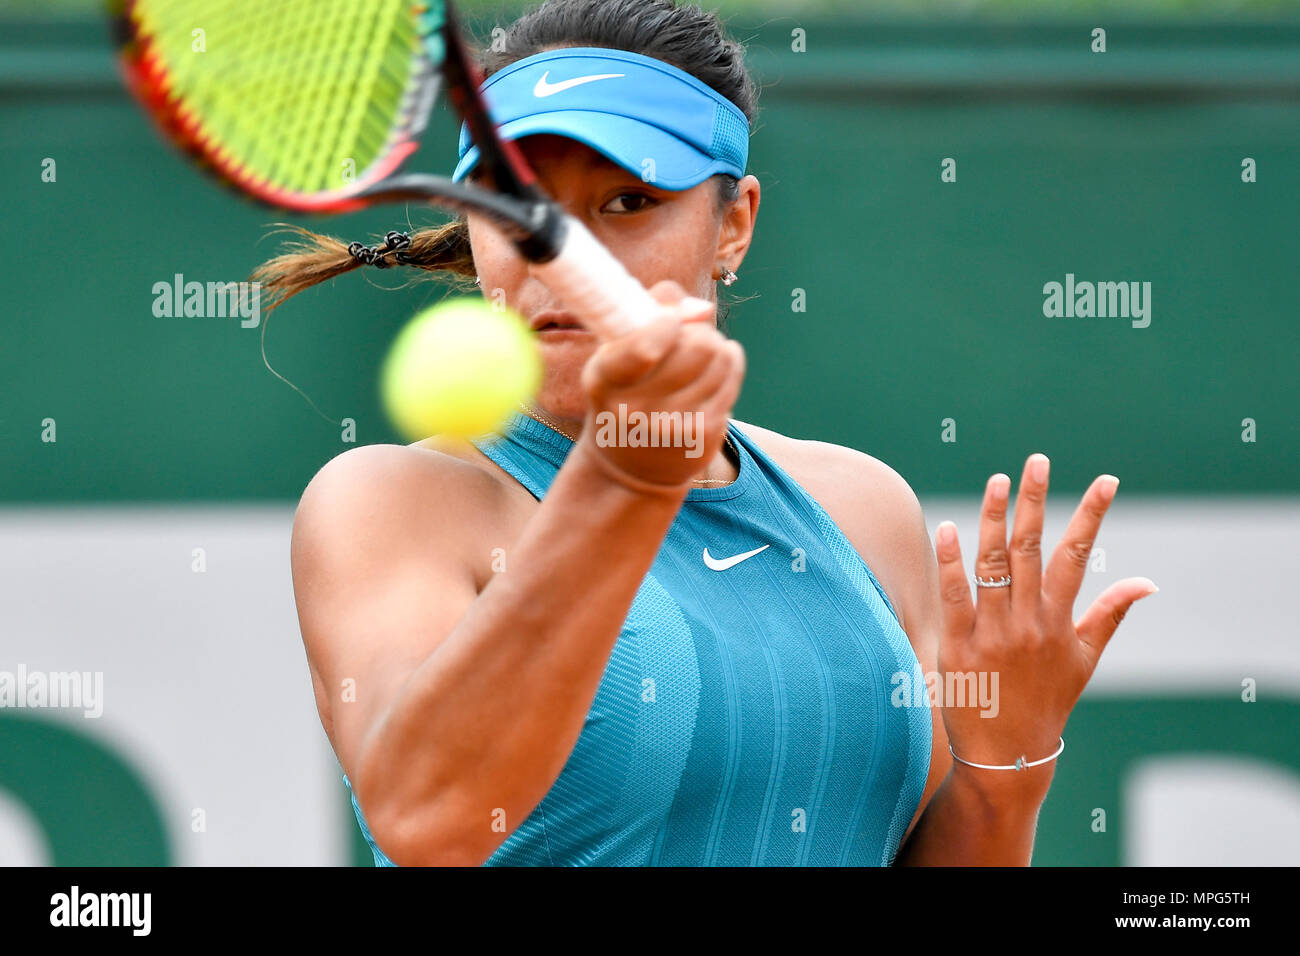 Paris, France. 23rd May, 2018. Destanee Aiava of Australia returns the ball to Liu Fangzhou of China during the women's singles Qualification 1st round match of French Open in Paris, France on May 23, 2018. Destanee Aiava lost 1-2. Credit: Chen Yichen/Xinhua/Alamy Live News Stock Photo